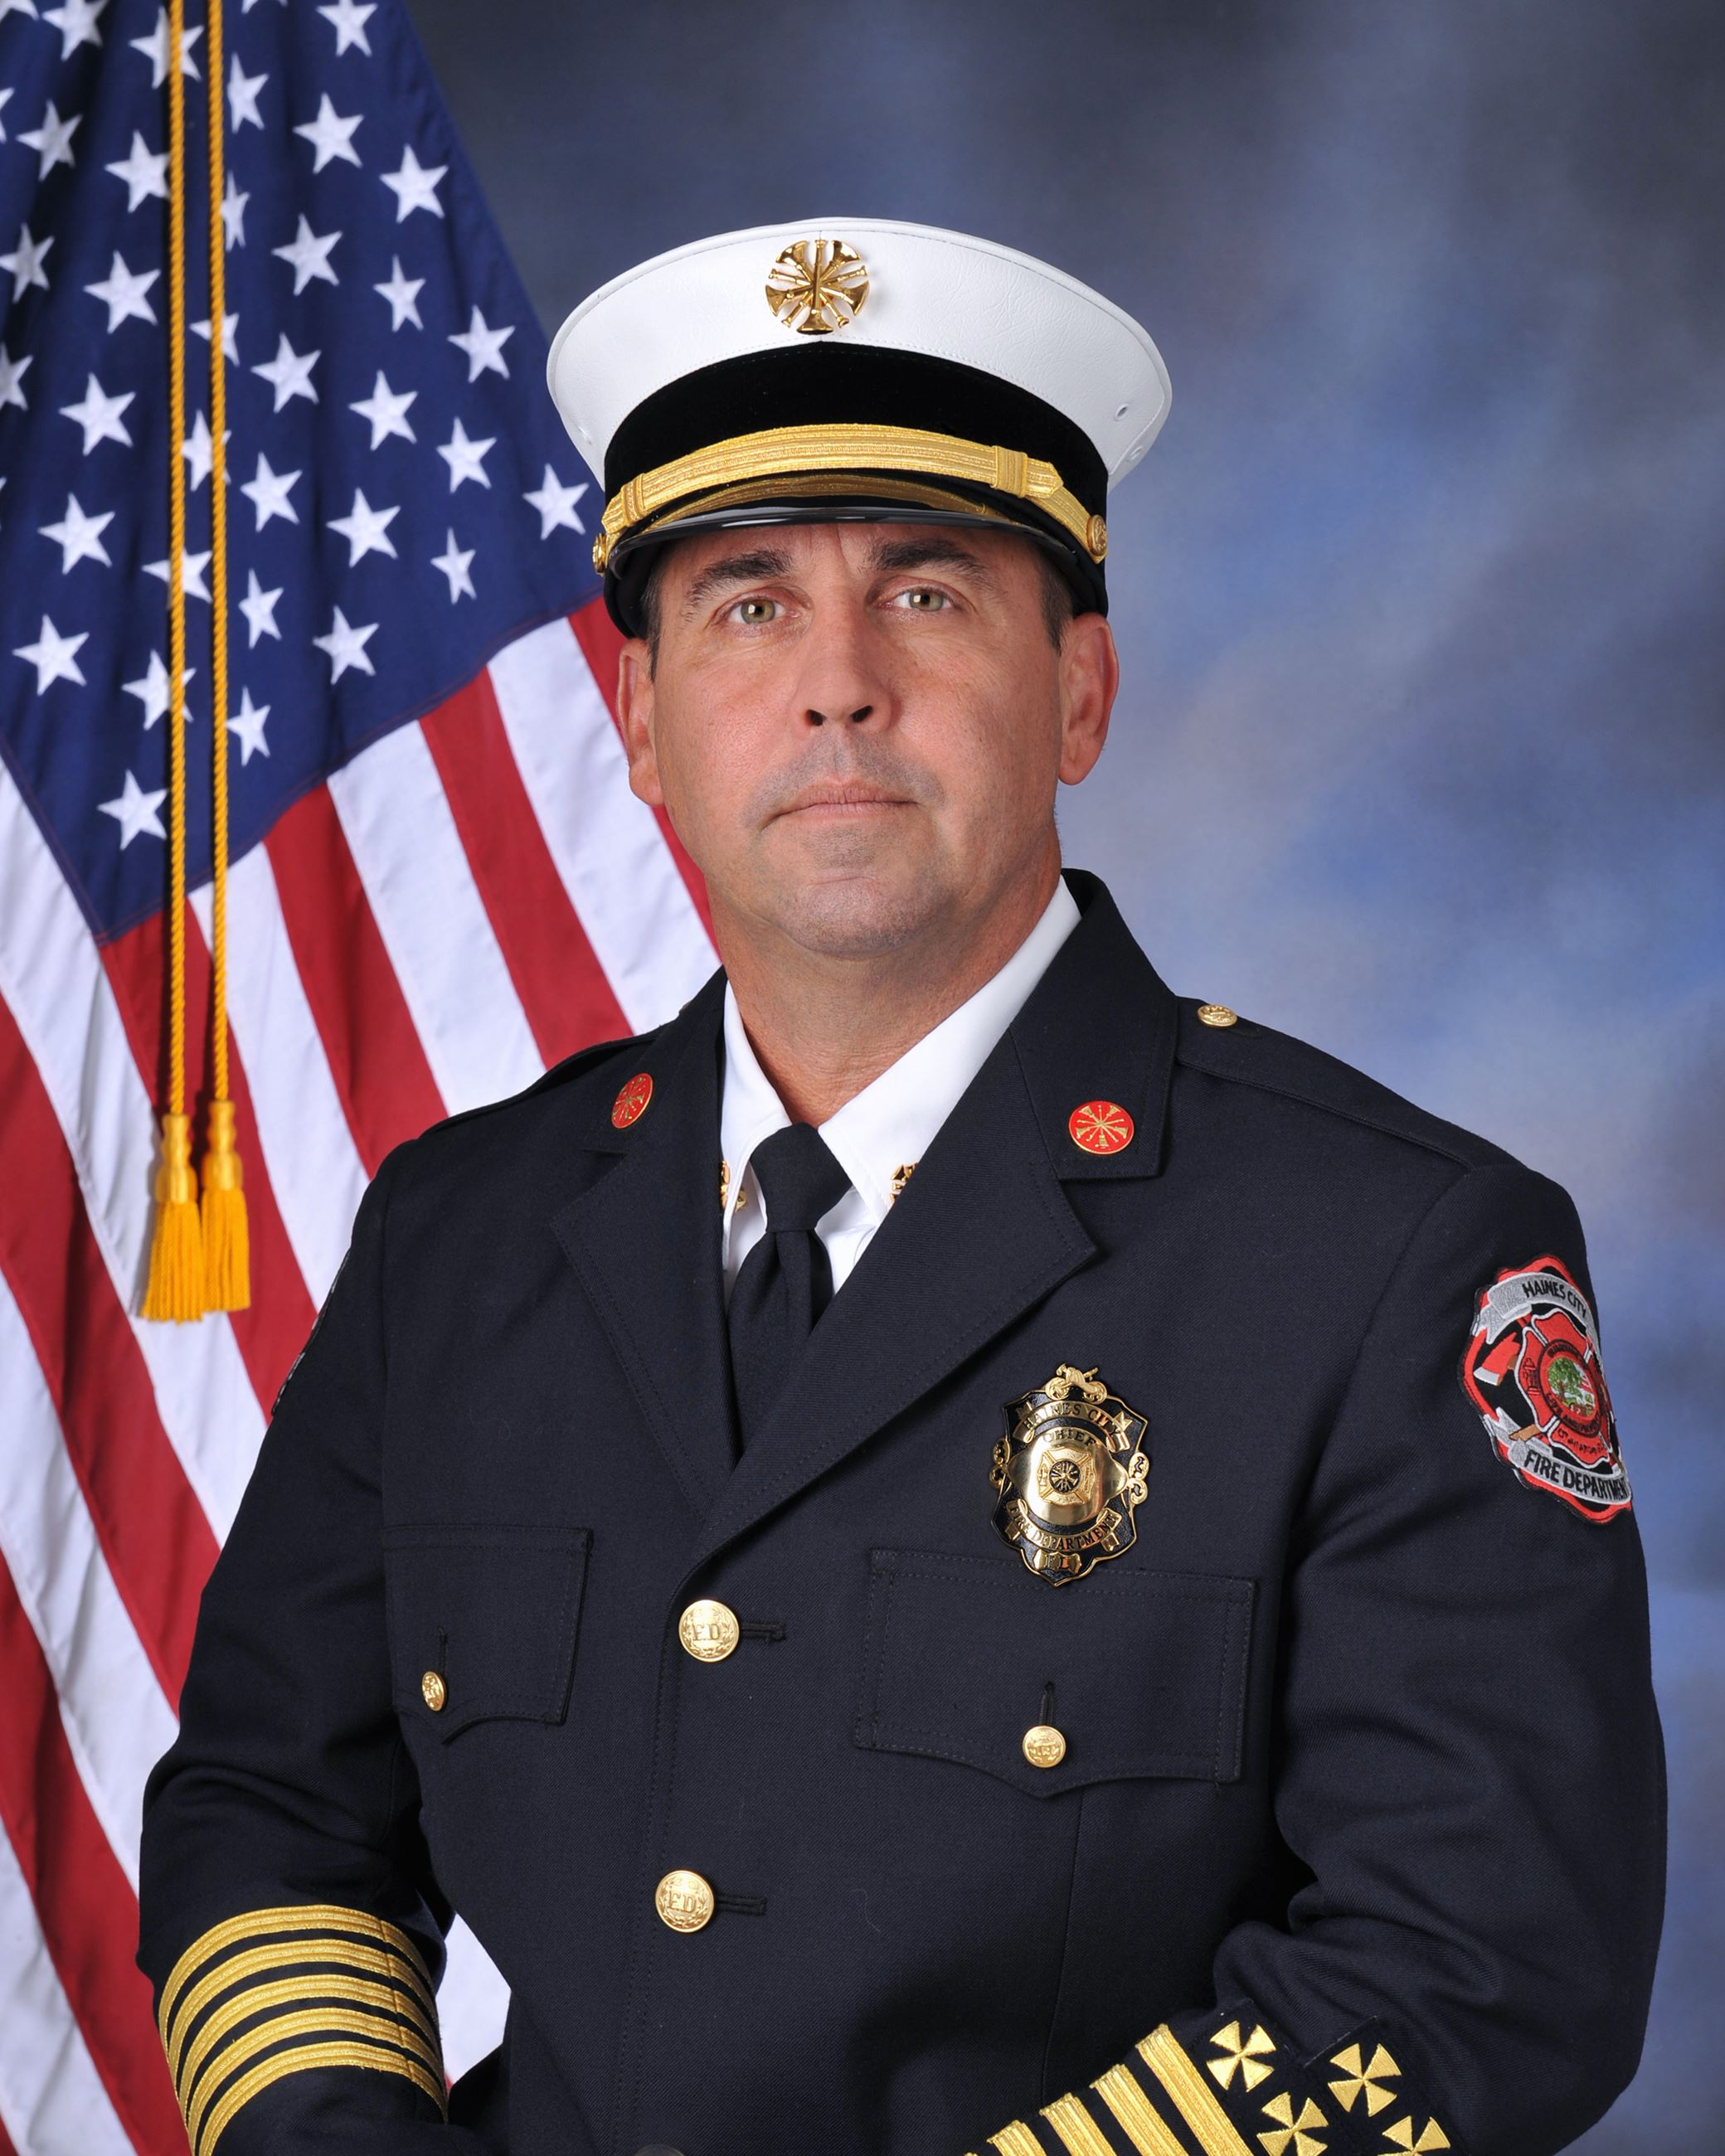 Fire Chief Jeffrey Davidson